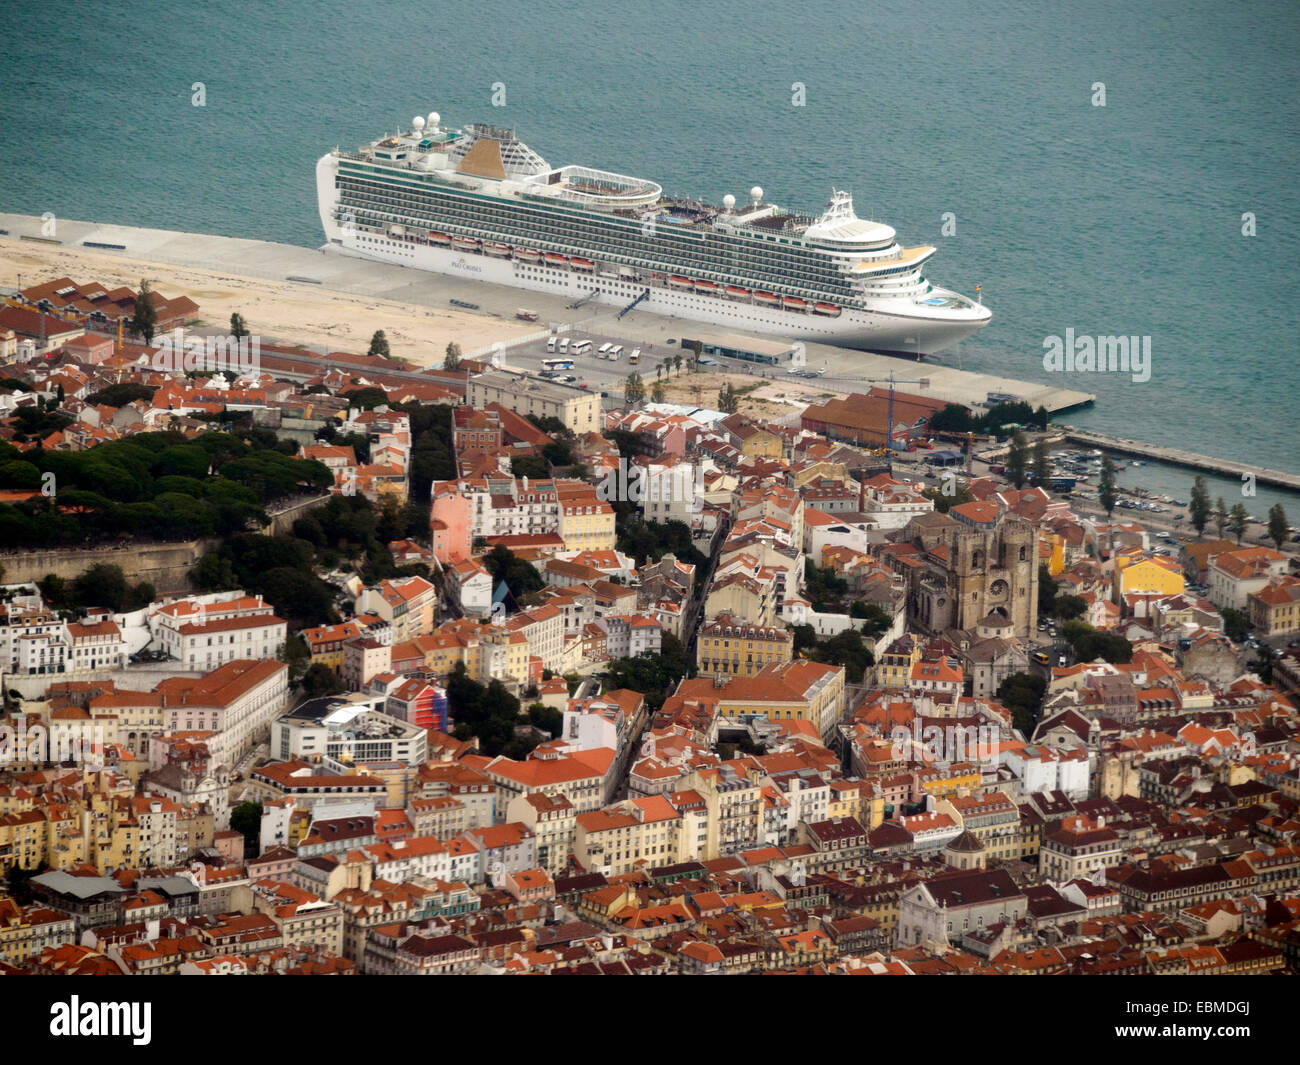 Aerial view of the P&O Azura cruise ship docked in the port of Lisbon, Portugal, Europe Stock Photo